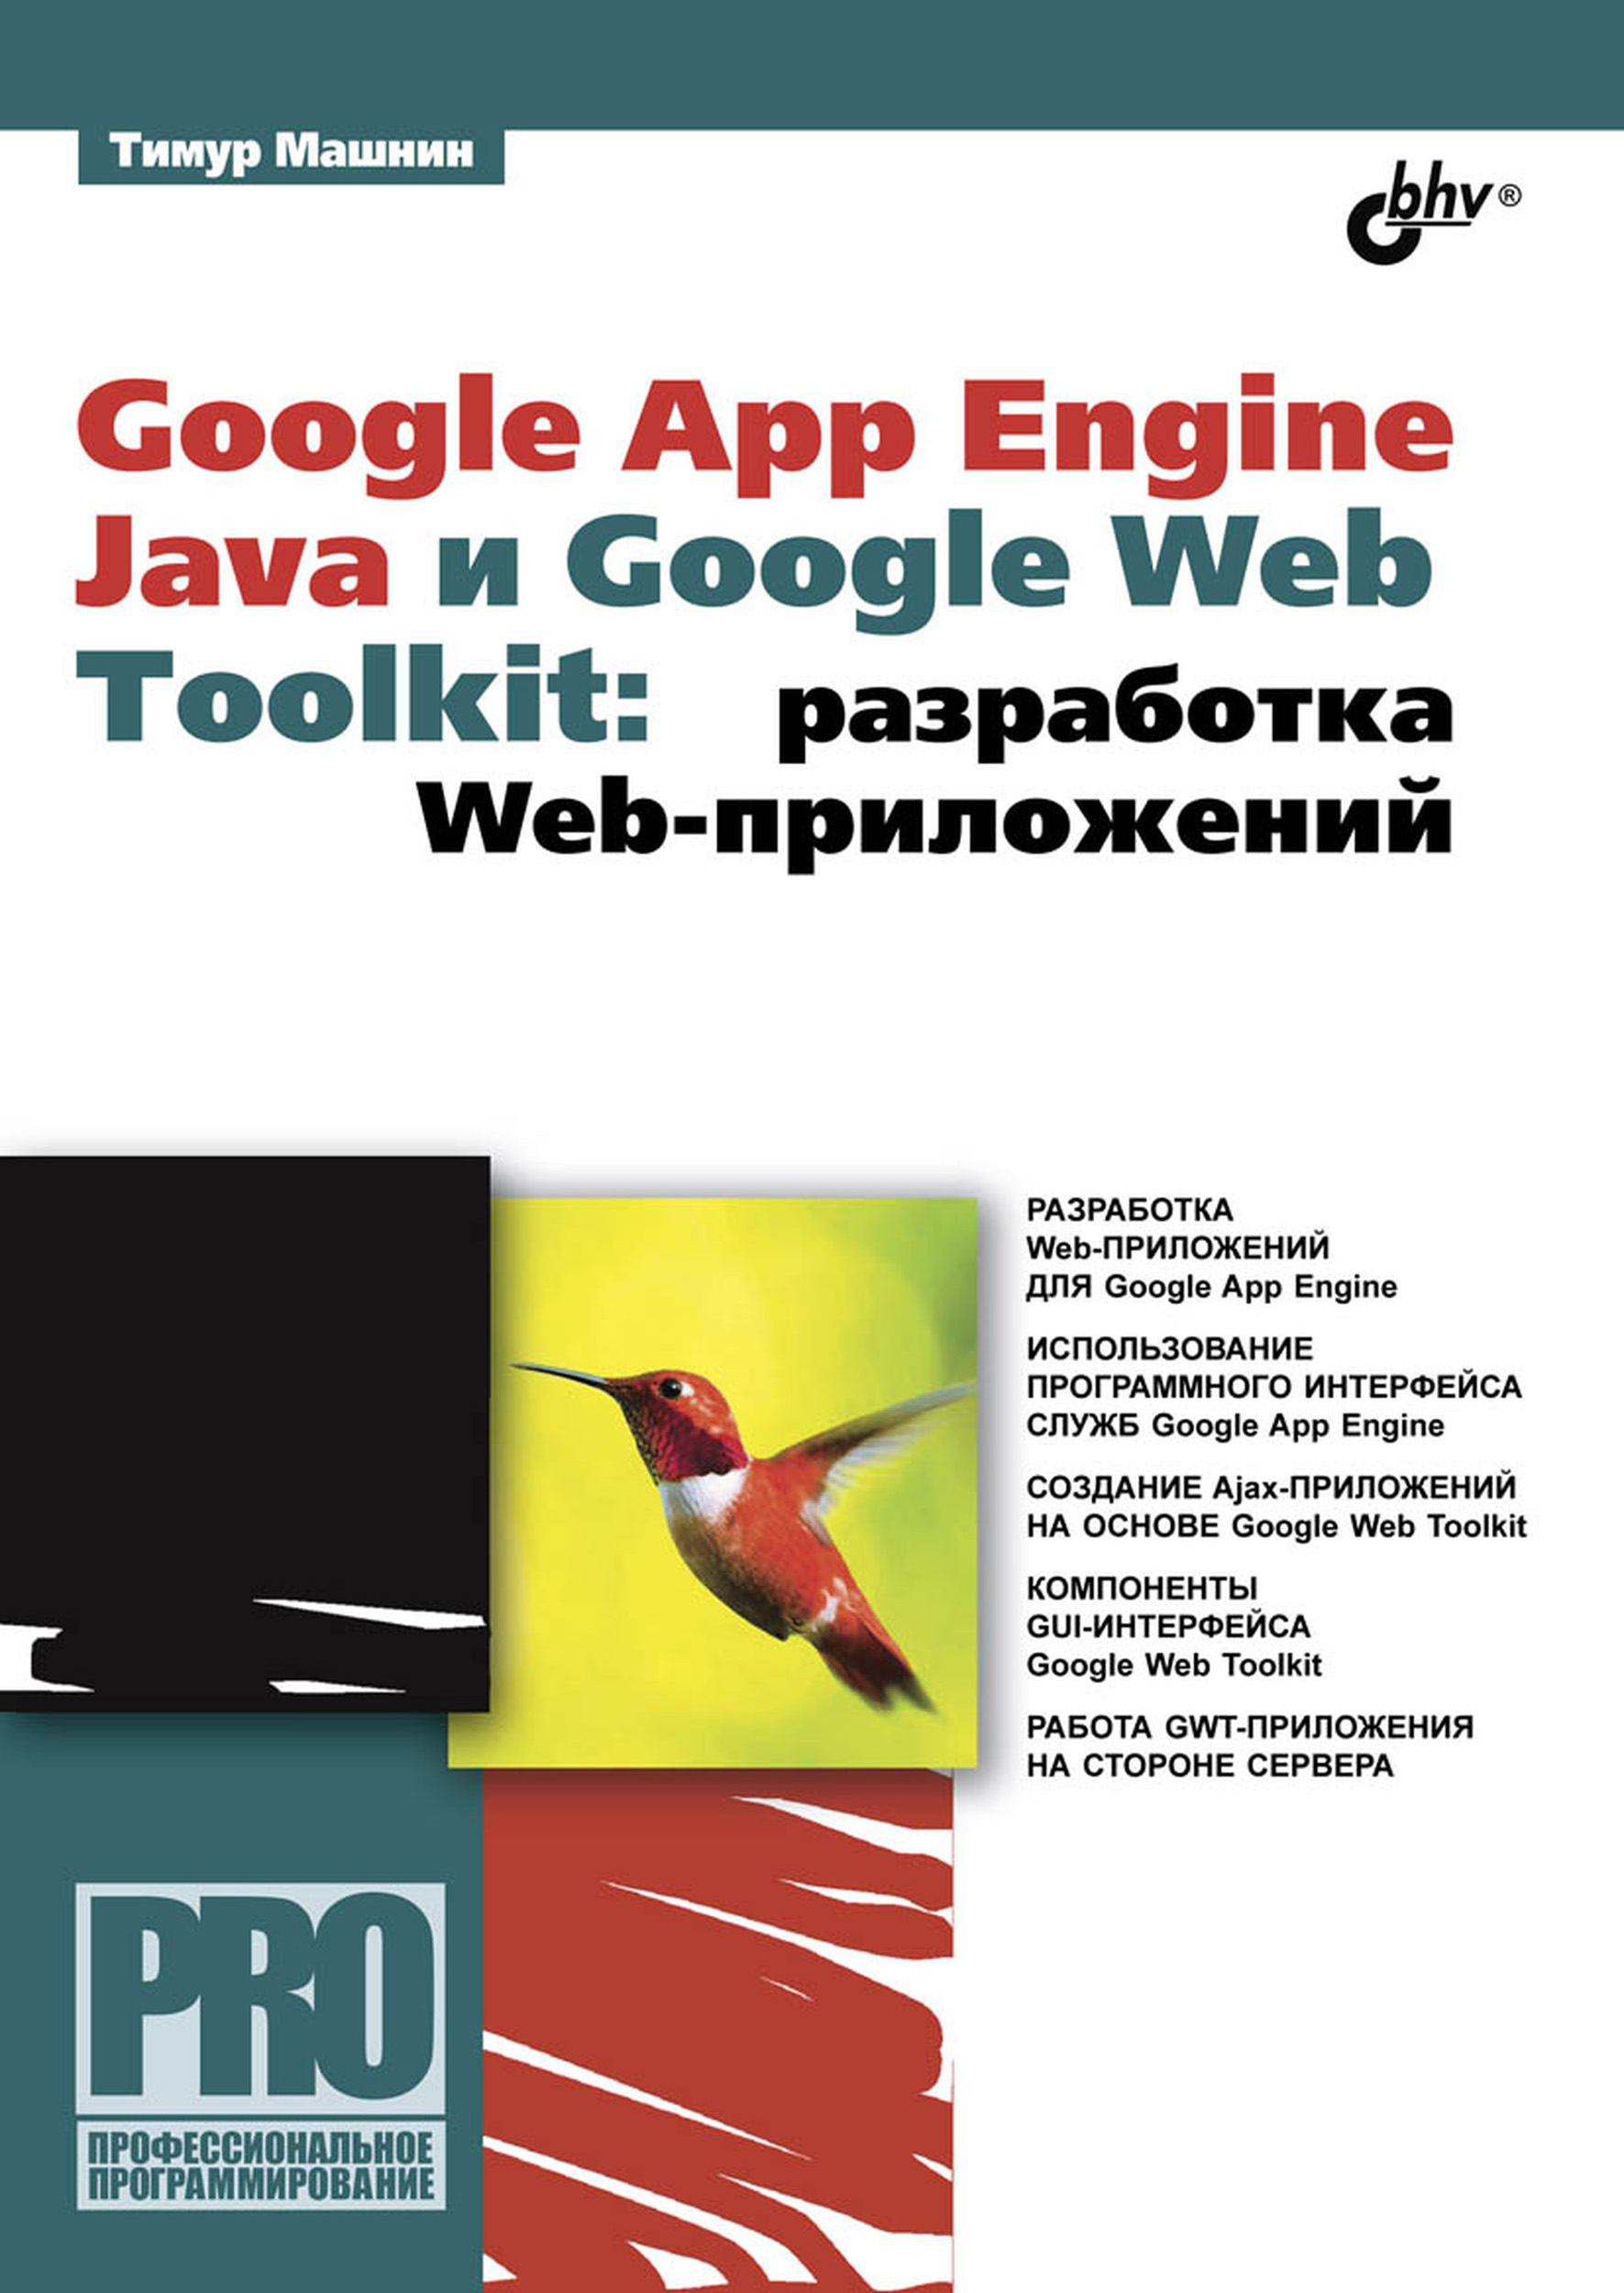 Фото - Тимур Машнин Google App Engine Java и Google Web Toolkit: разработка Web-приложений нейси дей лоренс мандел артур райман eclipse платформа web инструментов